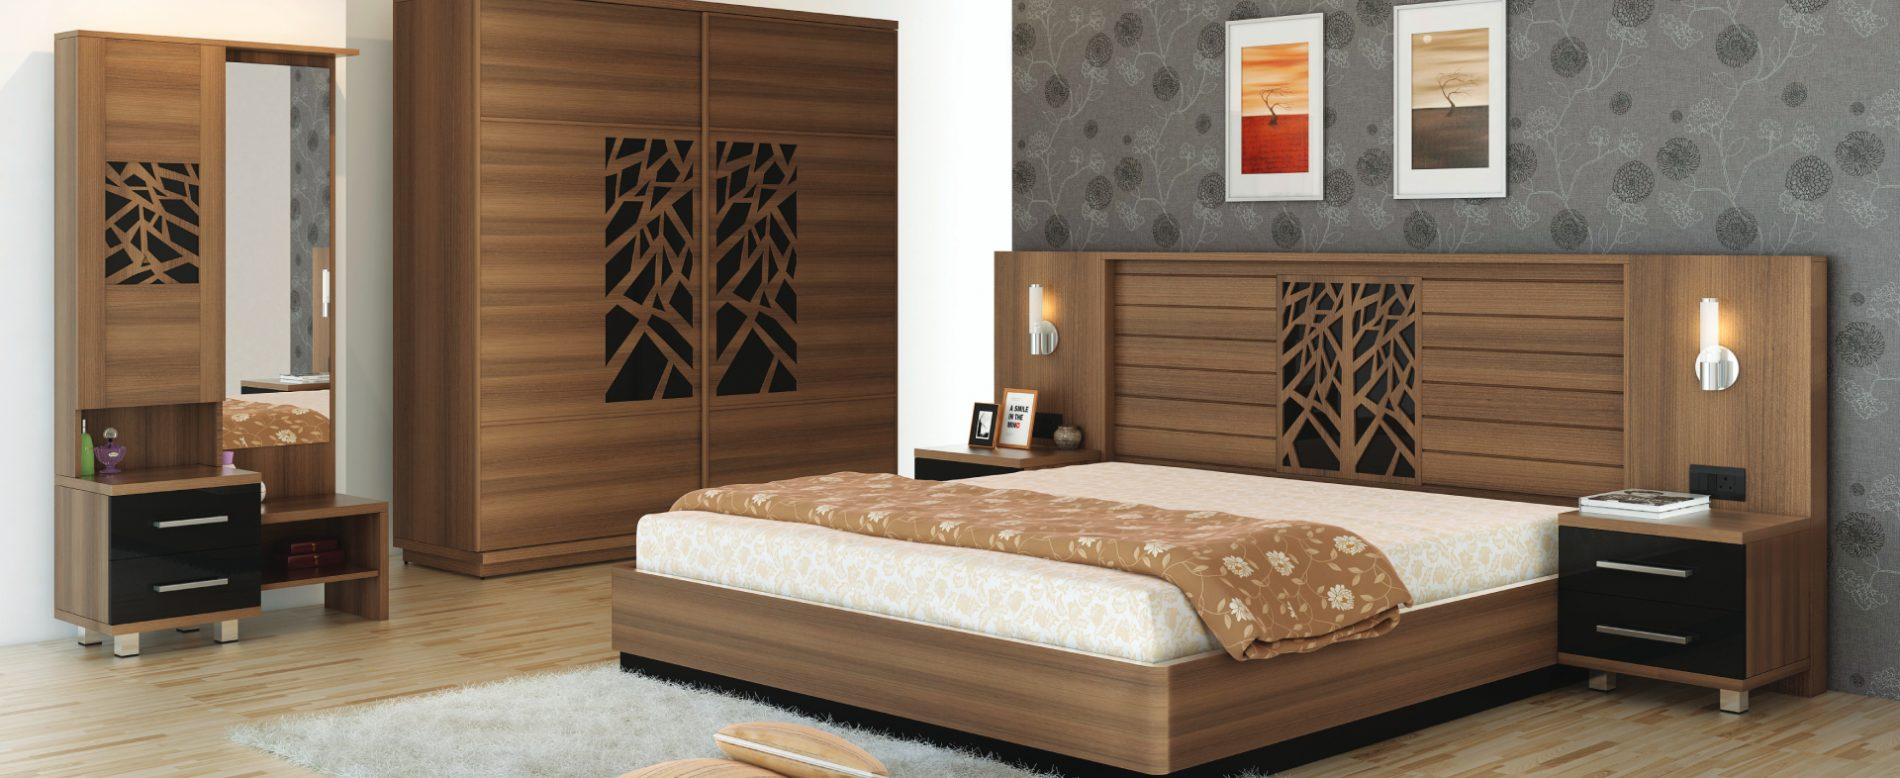 Bedroom Furniture: Looking for Style and Functionality